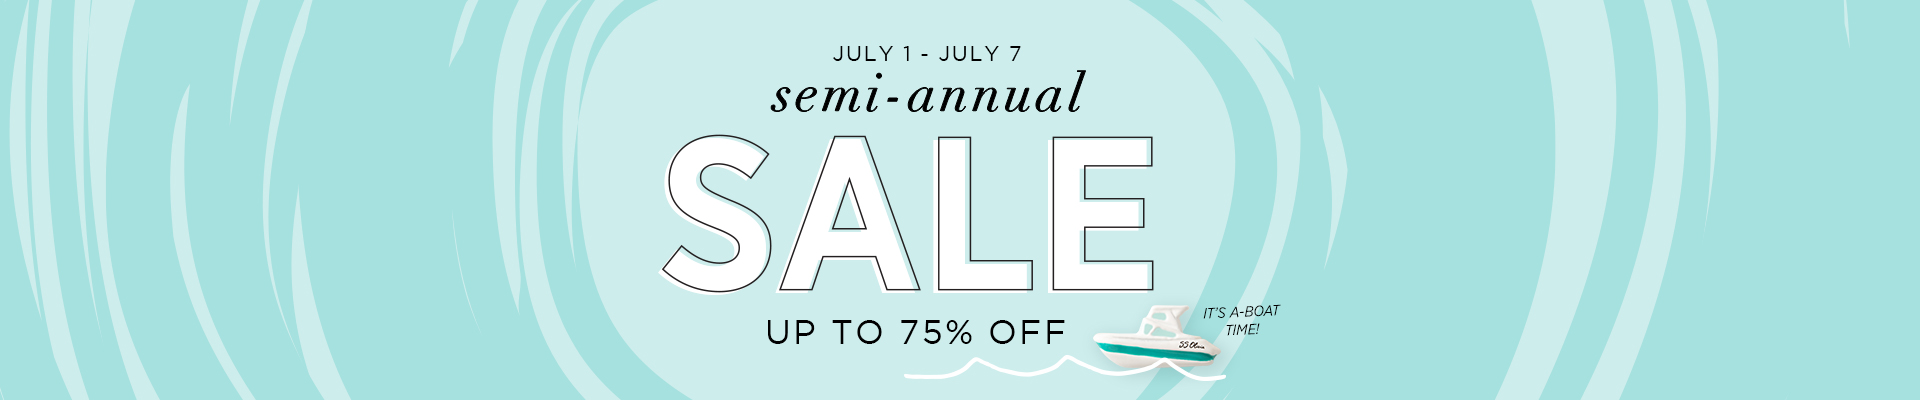 Semi Annual Sale banner